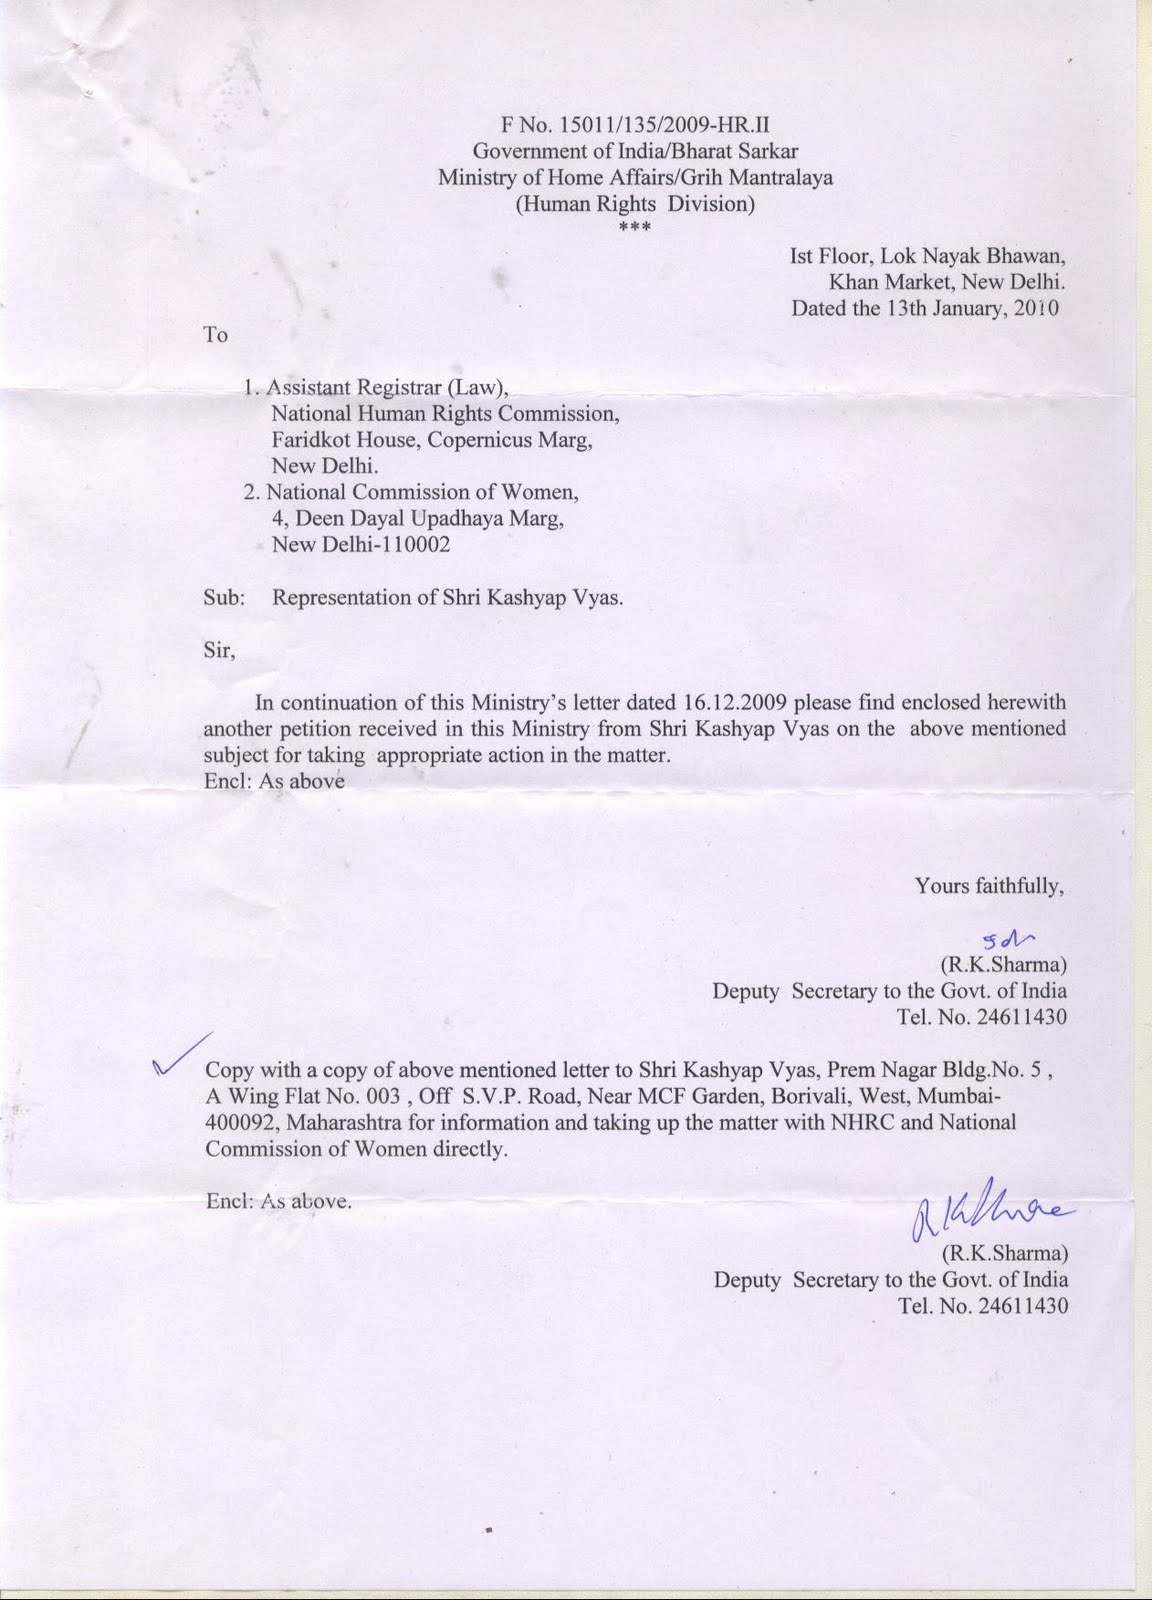 Letter+from+Home+Ministry+New+Delhi Office Reference Letter Template on nursing school, personal job, for nursing professional, legal character, sample business, for former employee, for coworker,